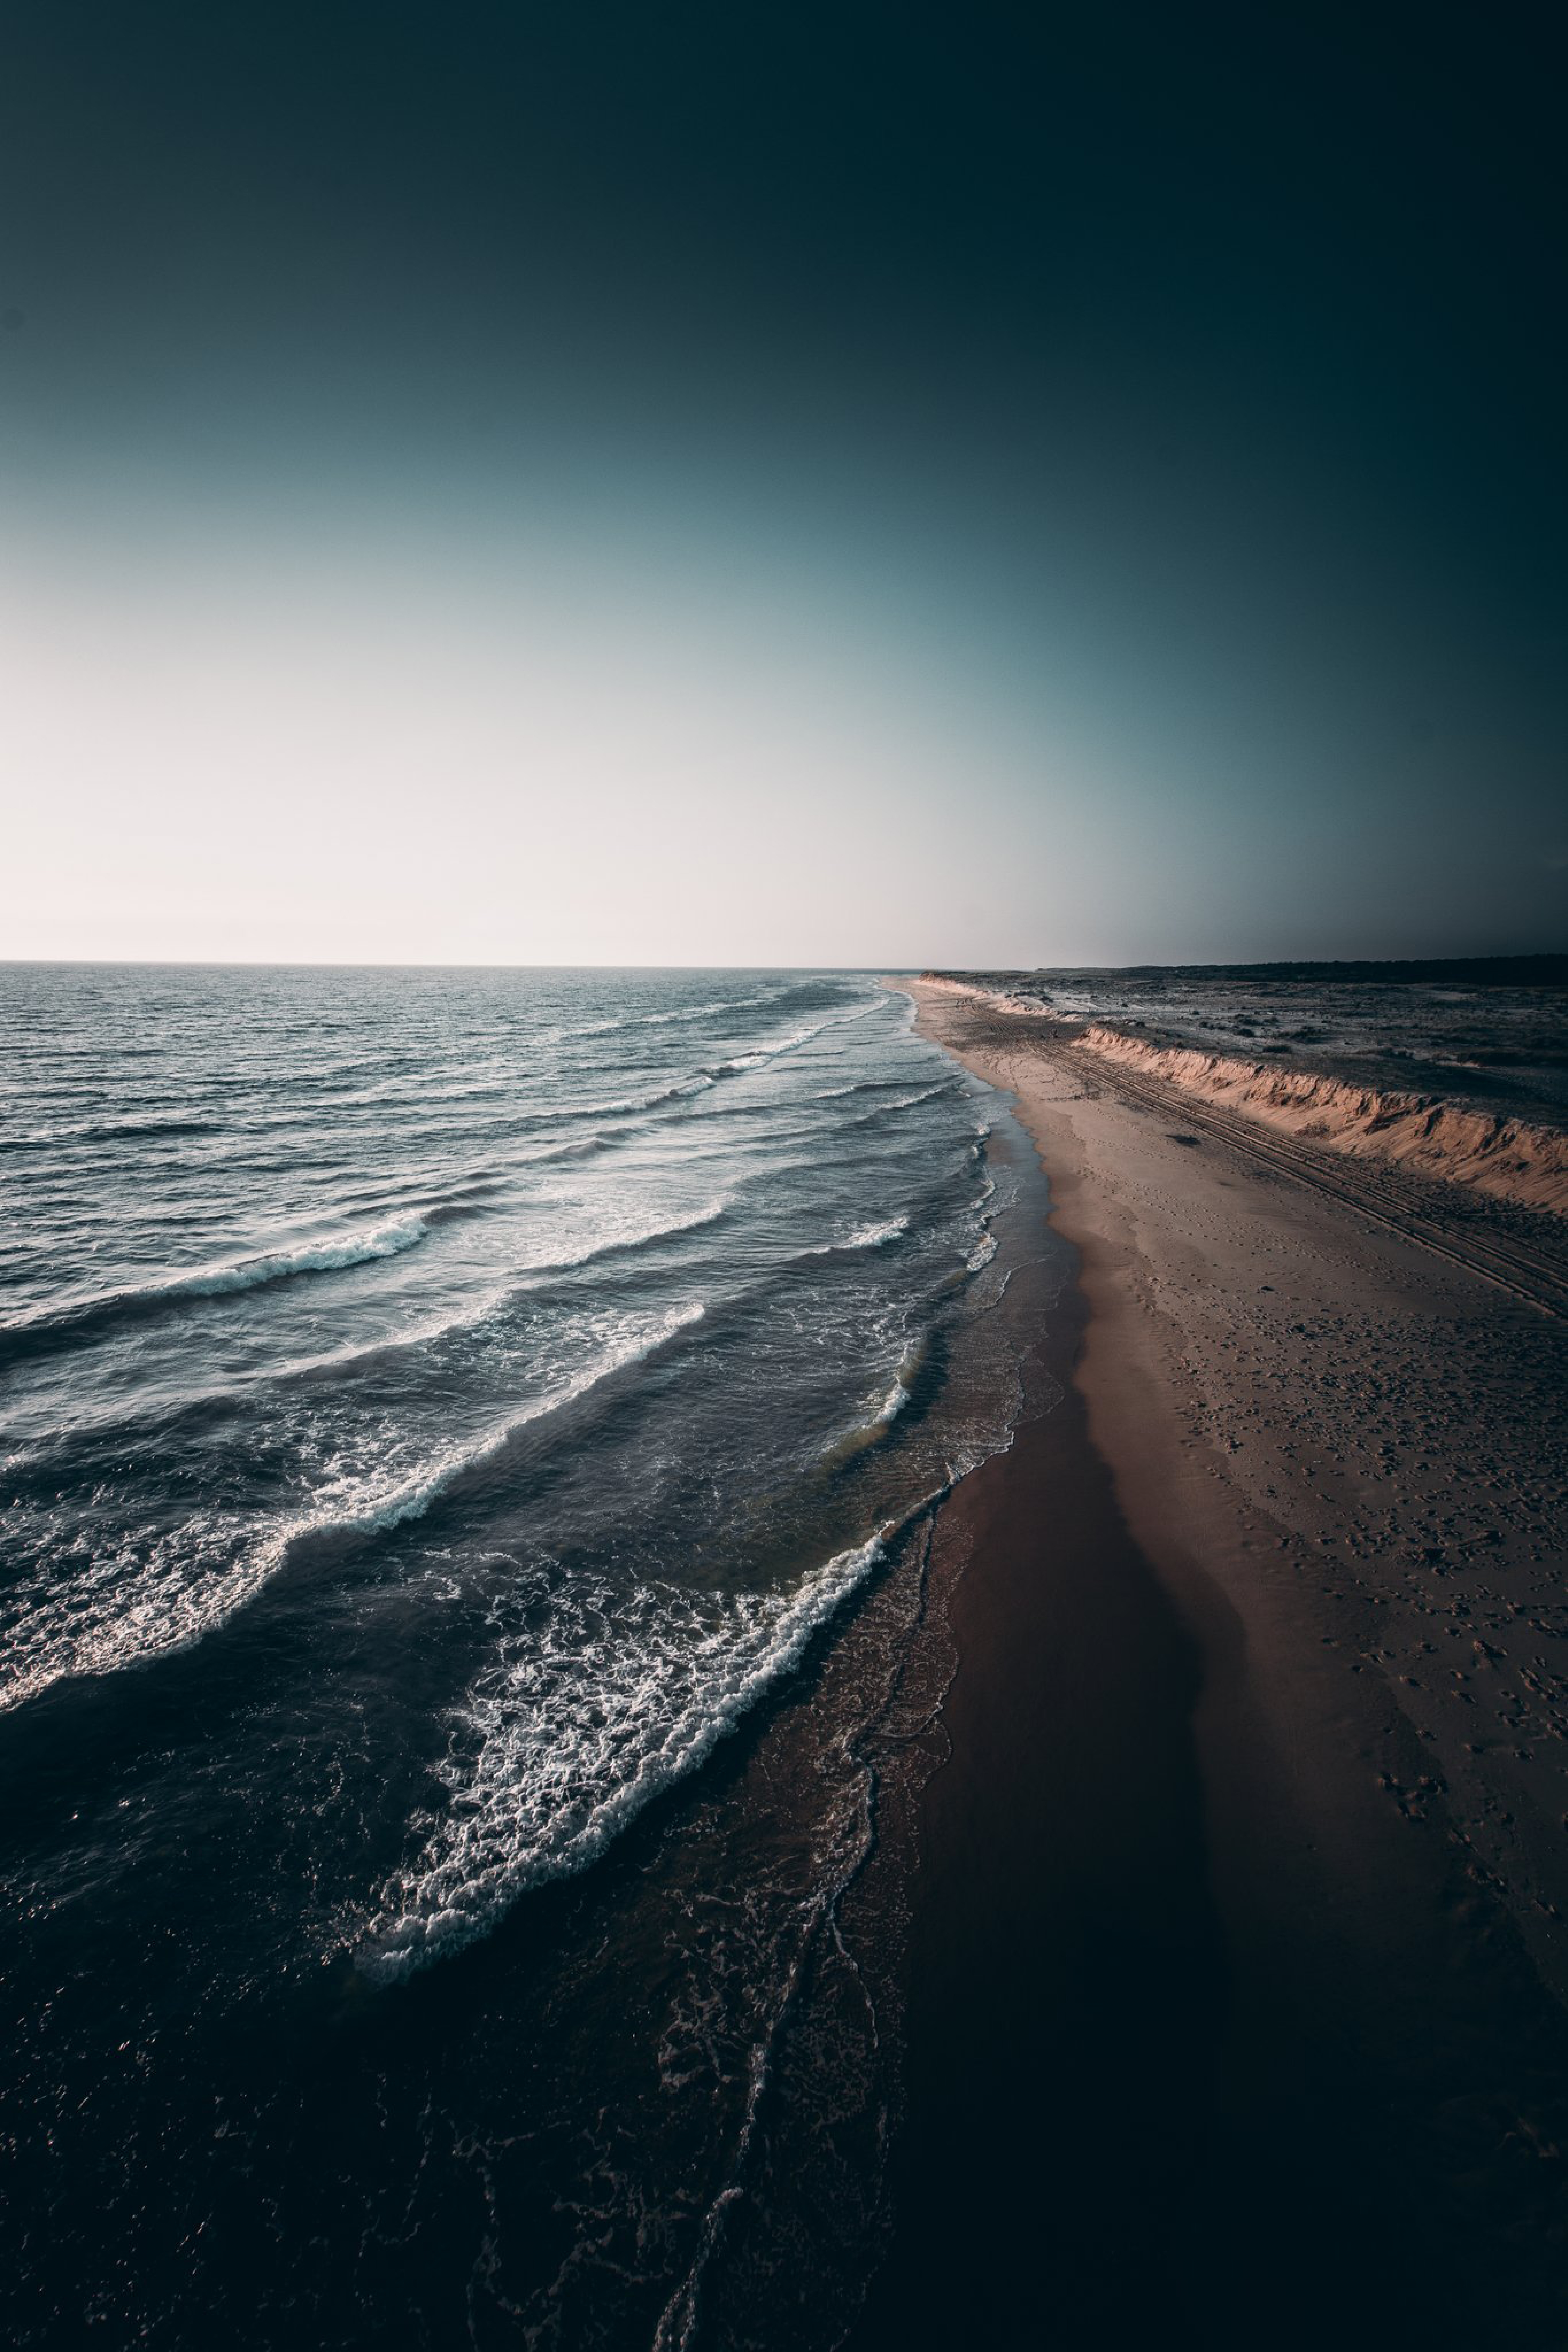 Free wallpaper 118159: Nature, Ocean, Surf, Shore, Bank, Sea, Horizon download pictures for cellphone